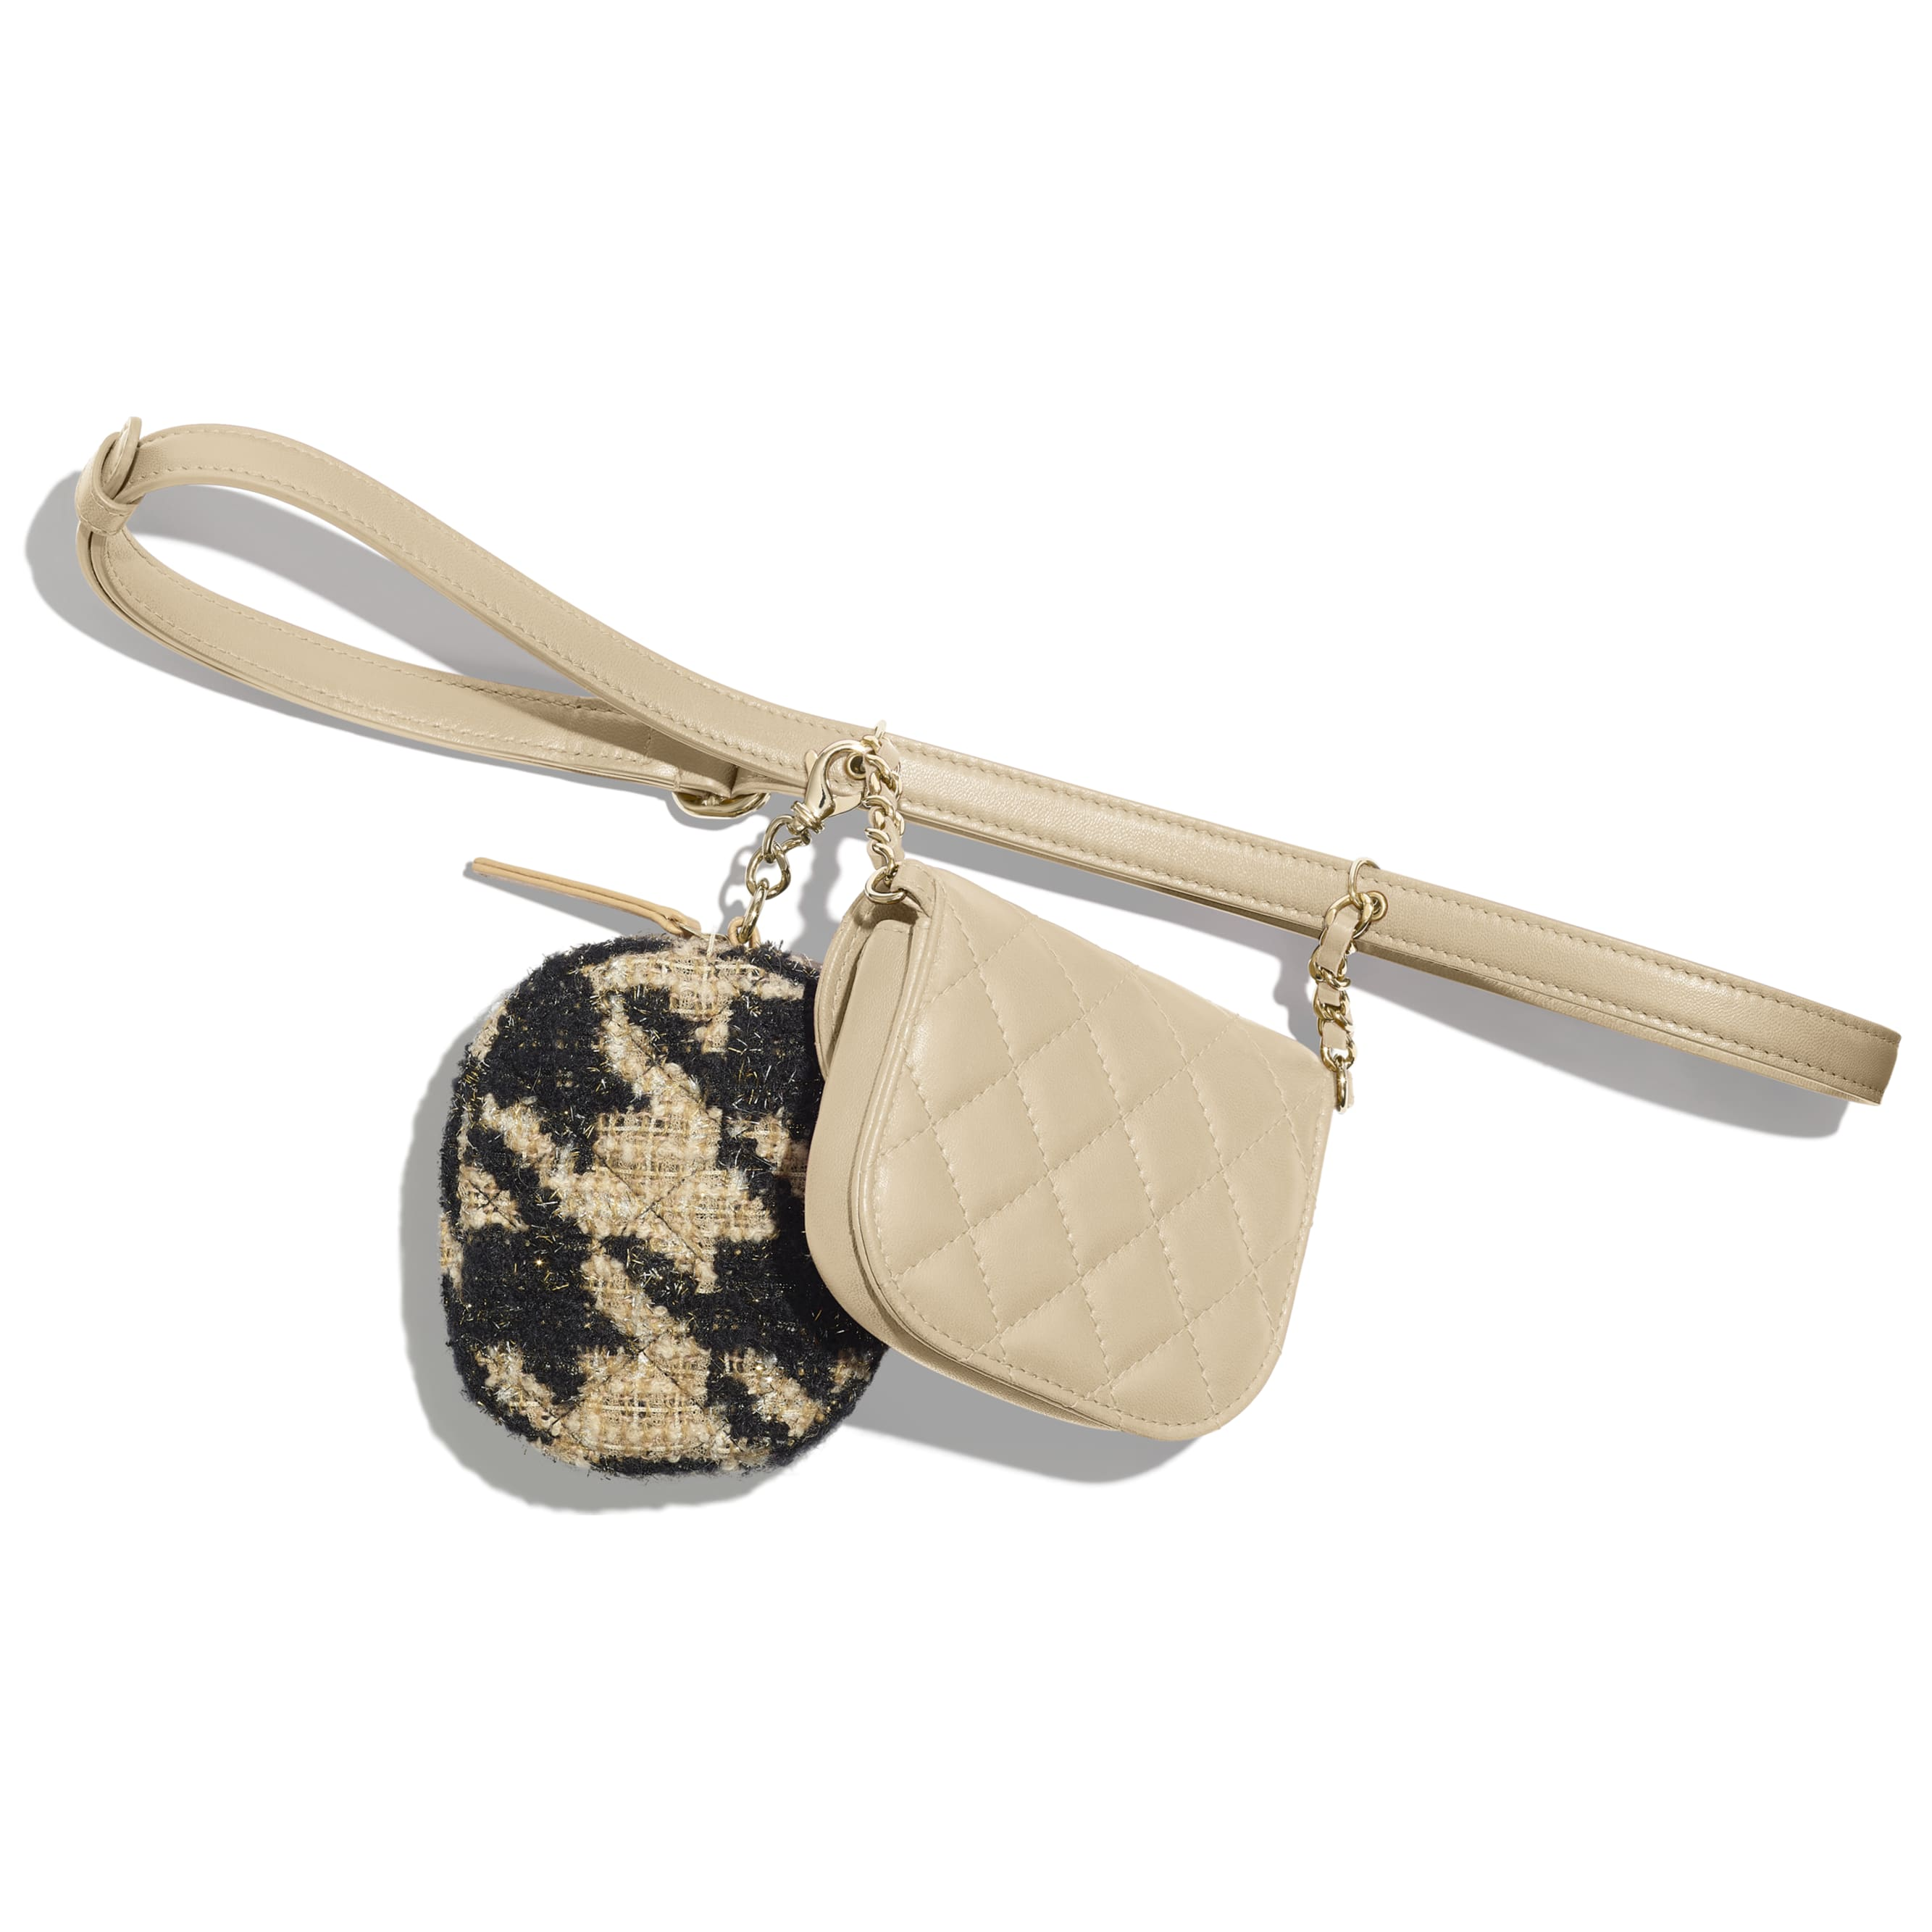 Waist Bag & Coin Purse - Beige & Black - Lambskin, Tweed & Gold-Tone Metal - Alternative view - see standard sized version